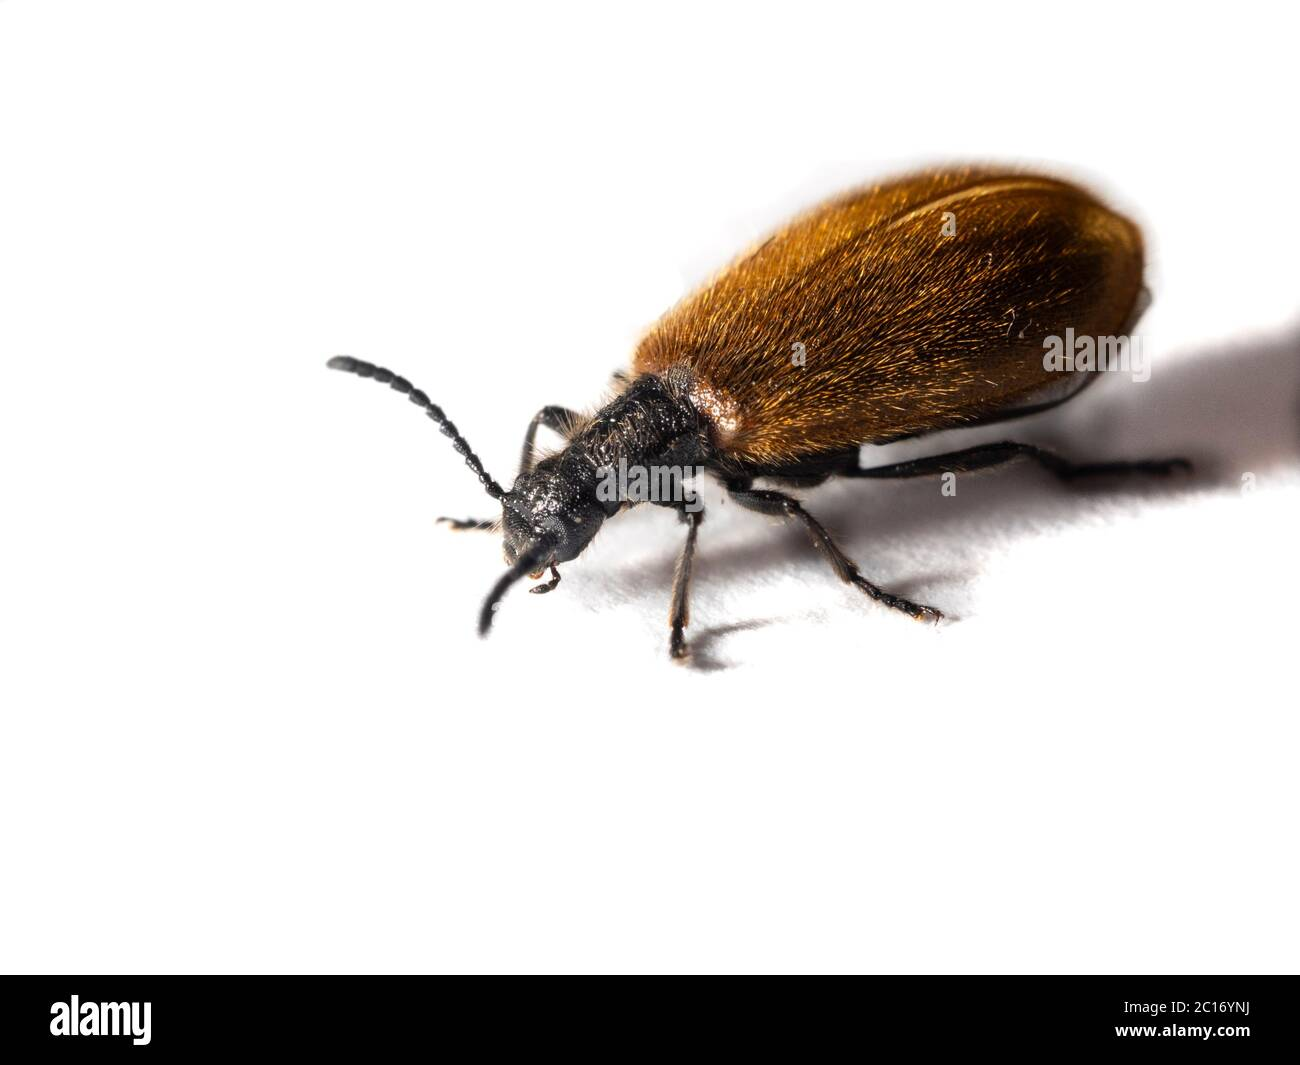 Close up of the small, hairy, bronze UK darkling beetle, Lagria hirta, on a white background Stock Photo